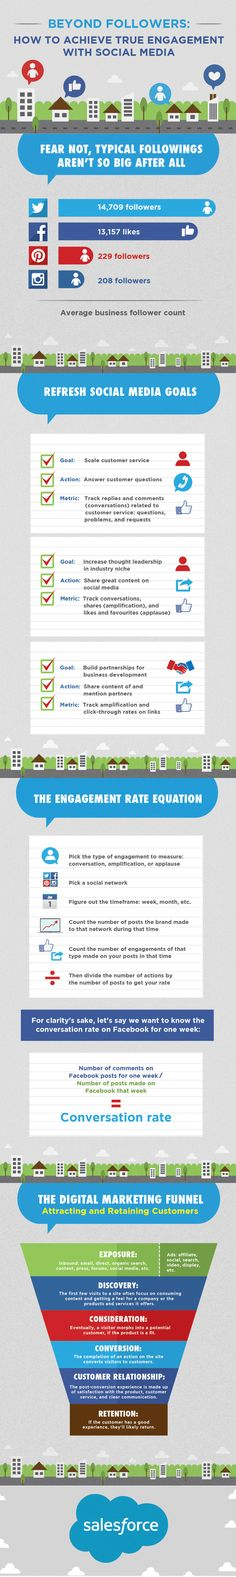 Seeking social media engagement? Understanding exactly what that means, and how to track yours, can be confusing. Cool infographic to the rescue! Key takeaways: Don't worry about a large following. It isn't that common, or important. Do set social media goals that align with your business goals. Do discover your engagement rate using their simple formula. Check the infographic for the details, and repin for later!